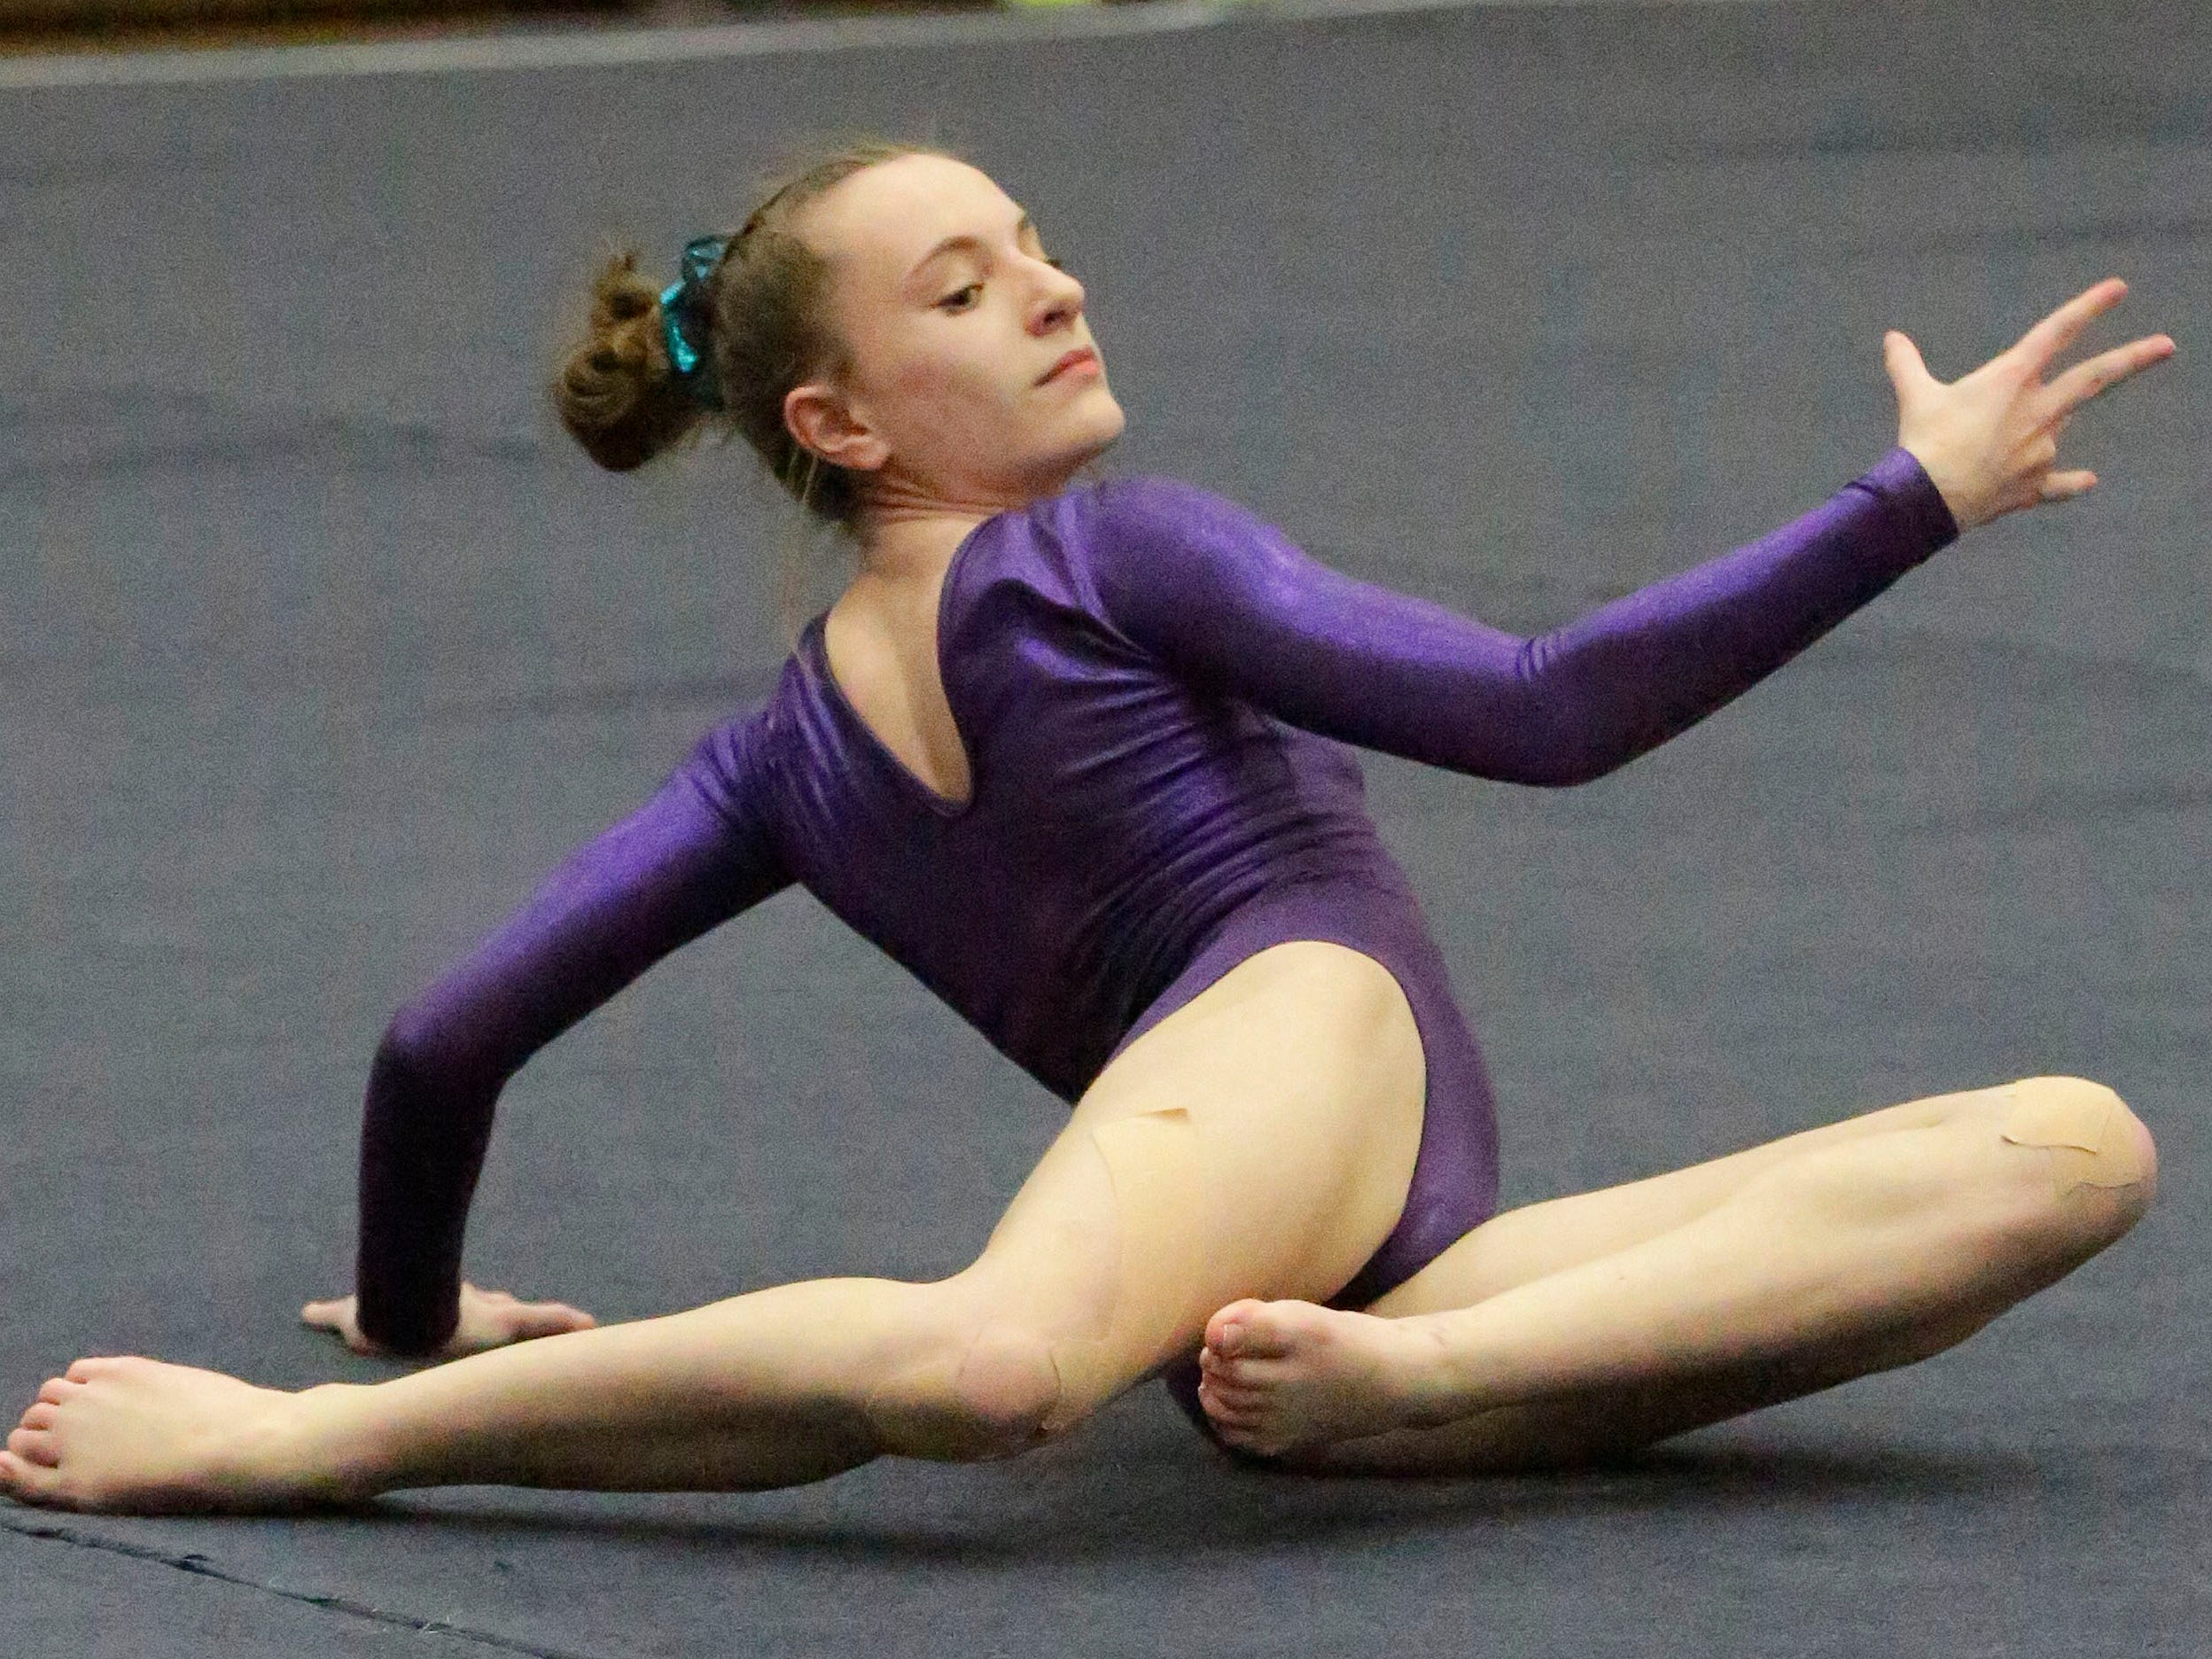 Oshkosh's Kaitlyn Golden works her floor exercise at the WIAA Eastern Valley Conference Gymnastics Meet at Sheboygan South, Friday, February 15, 2019, in Sheboygan, Wis.